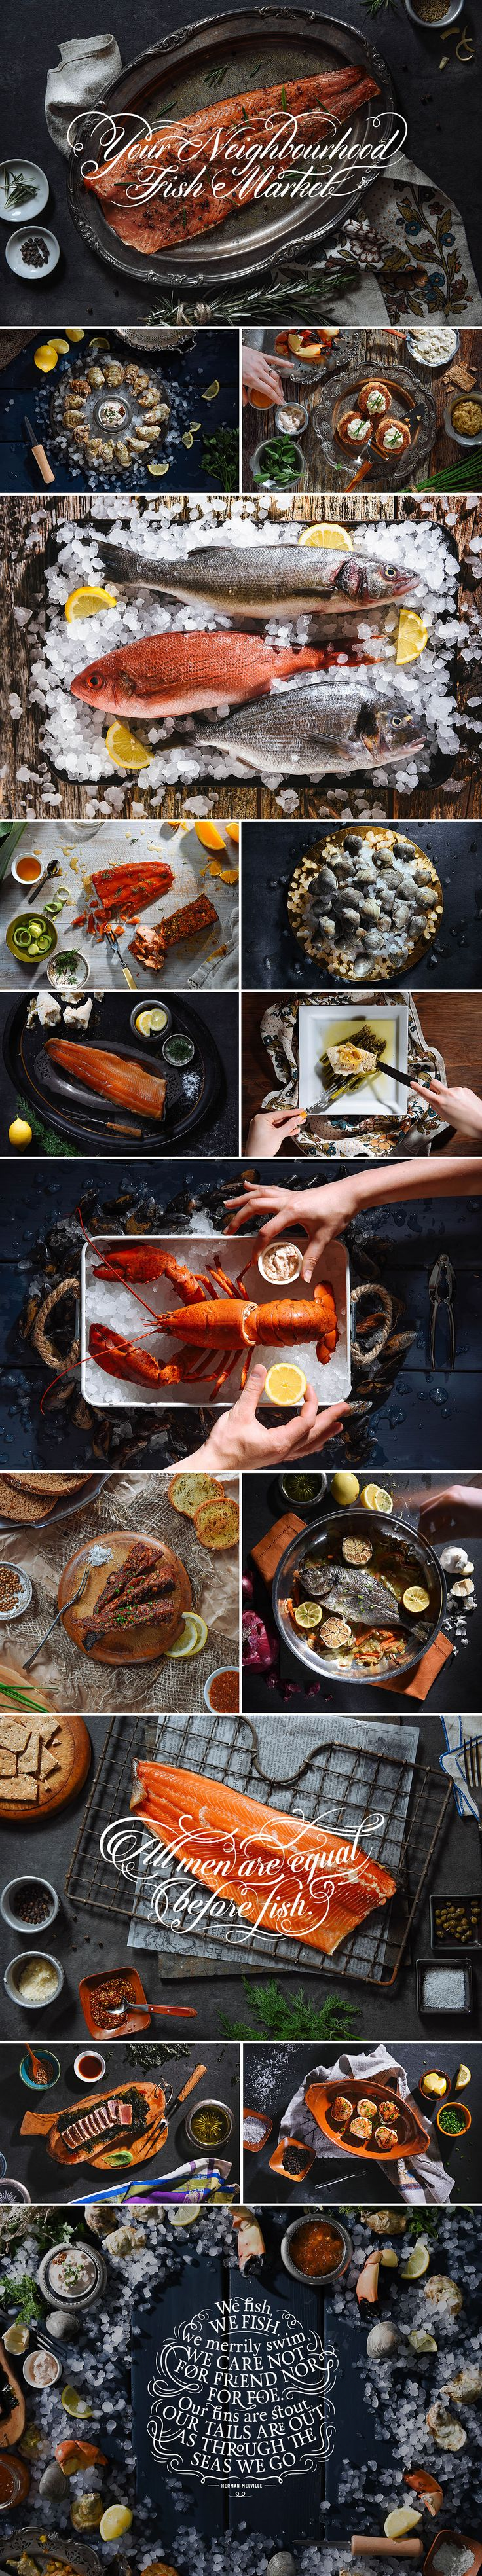 Best 20 seafood shop ideas on pinterest see best ideas for Fish grill near me